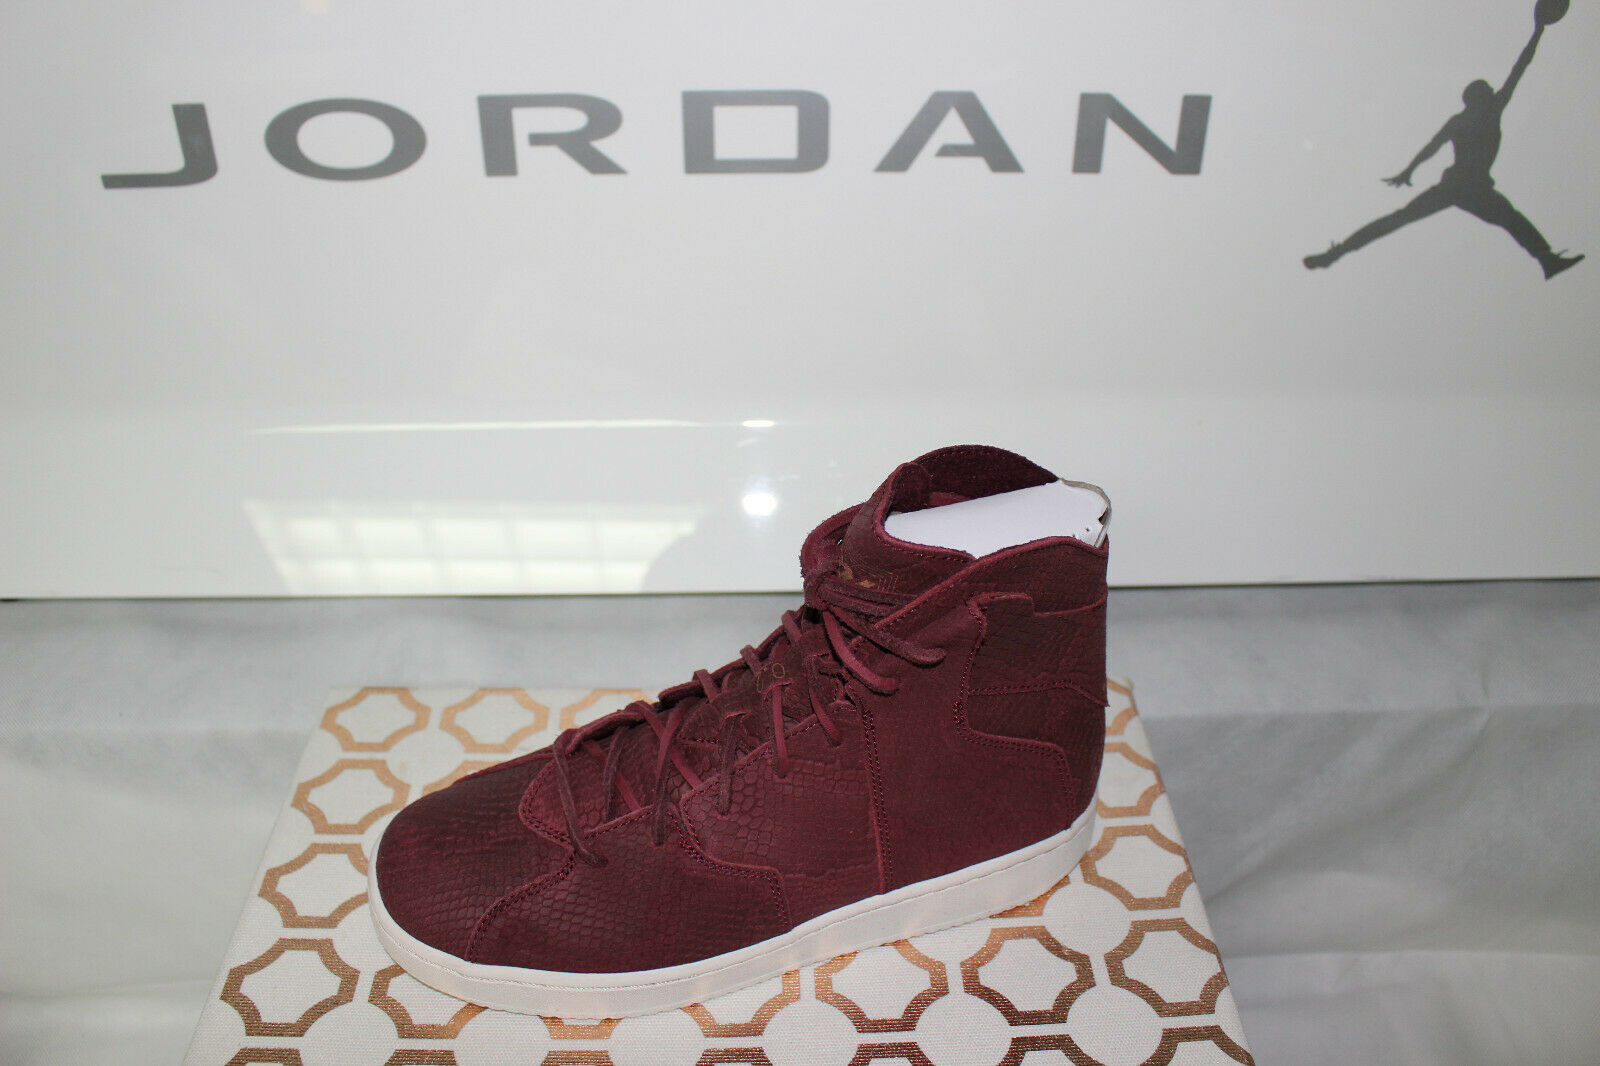 Nike Air Jordan Jordan Jordan Westbrook 0.2 854563-601 Night Maroon, New Size 8 17a49a